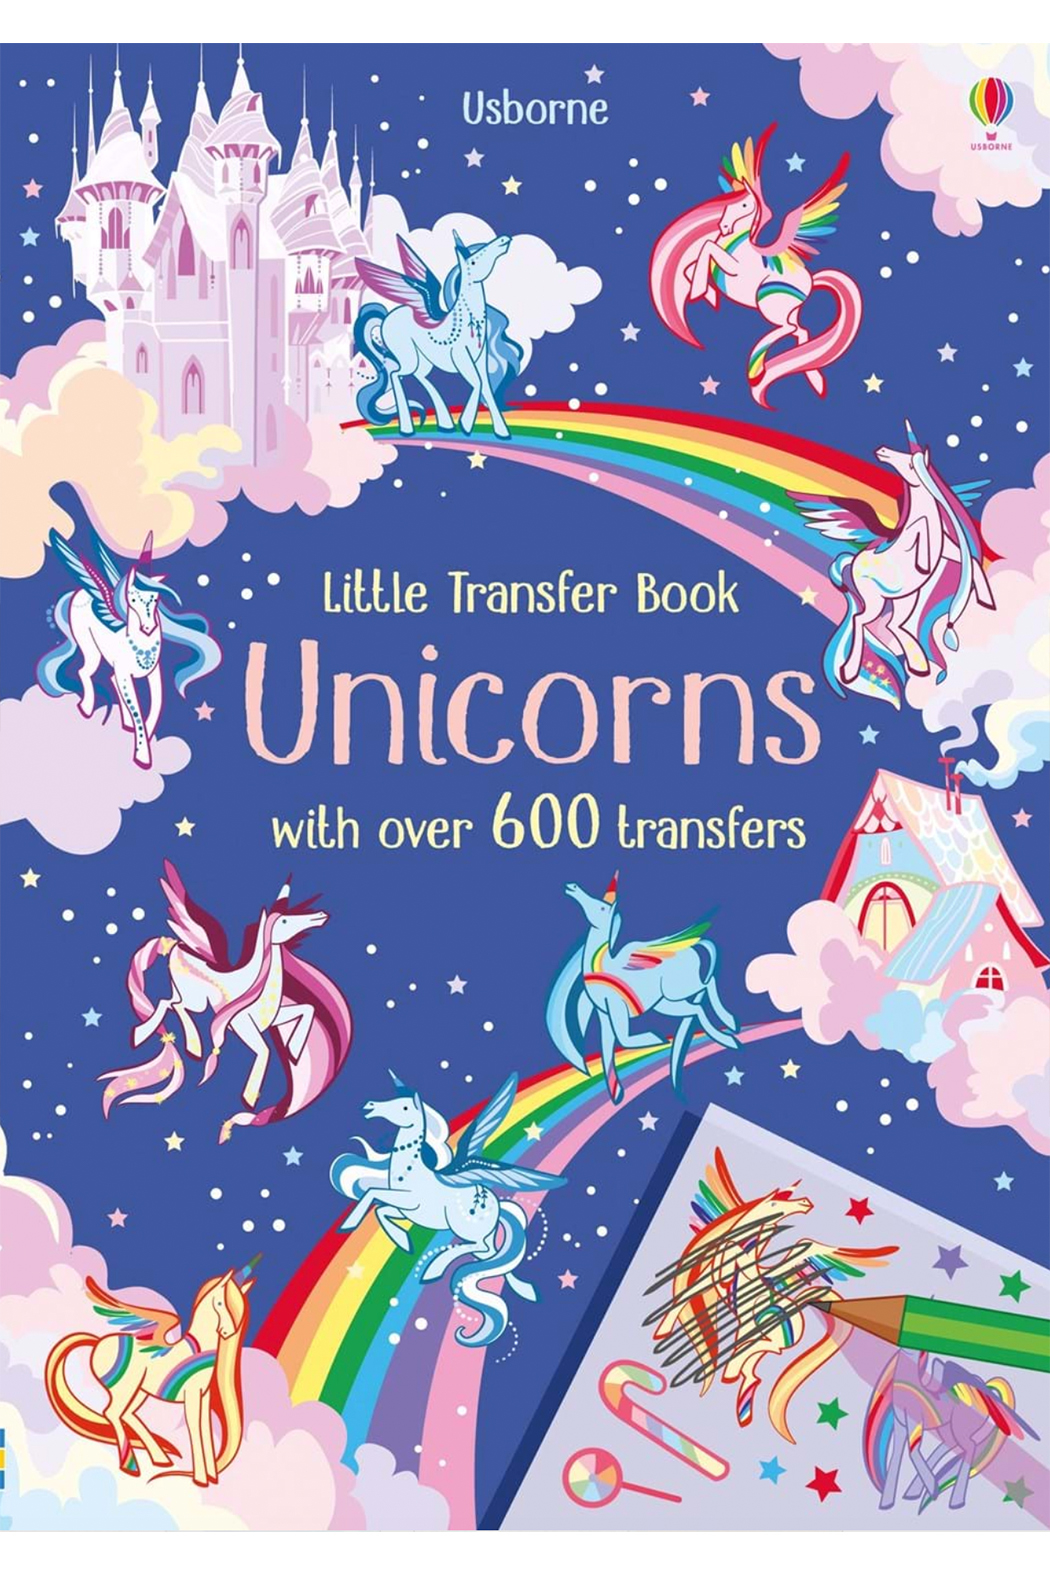 Usborne Little Transfer Book: Unicorns - Main Image